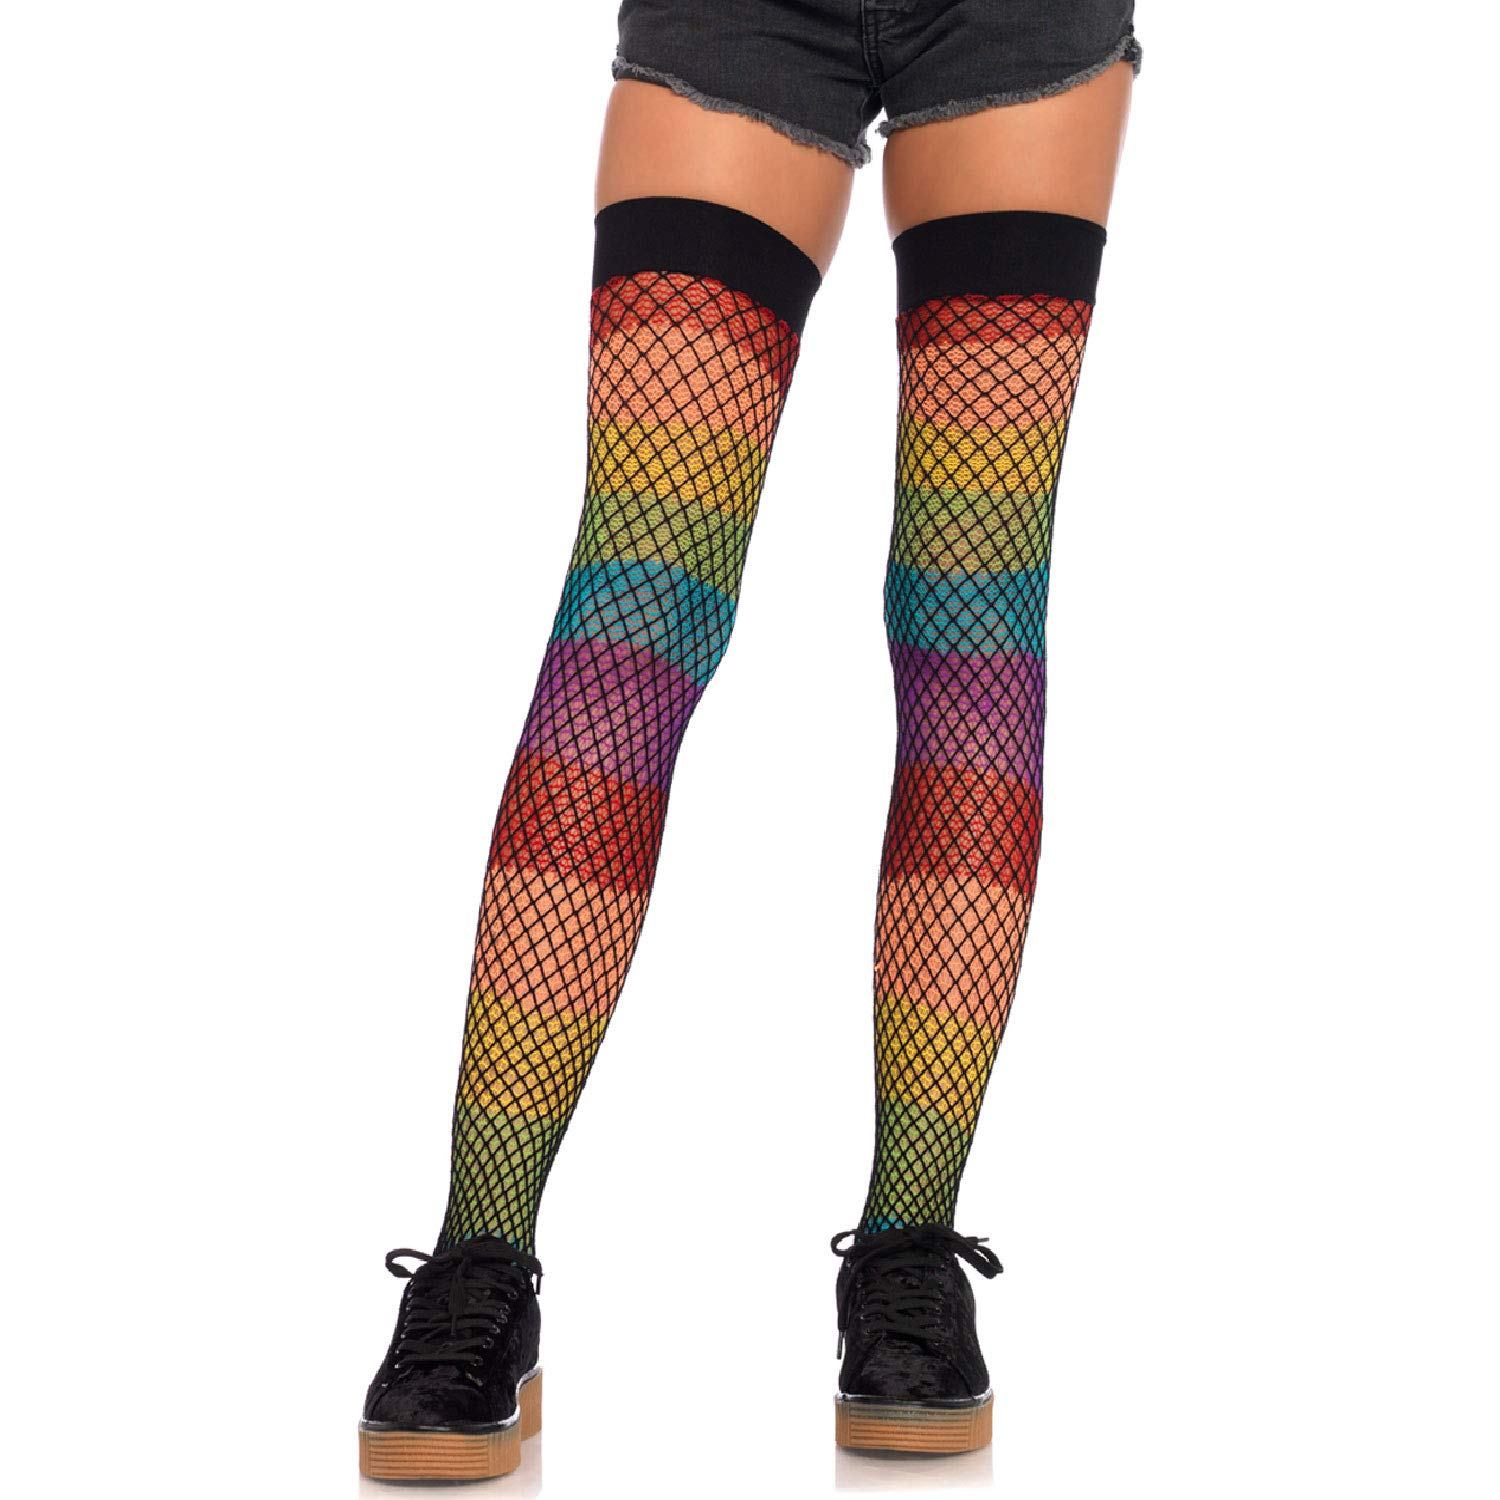 38287e4964d Amazon.com: Leg Avenue Womens Rainbow Thigh Highs with Fishnet Overlay:  Clothing